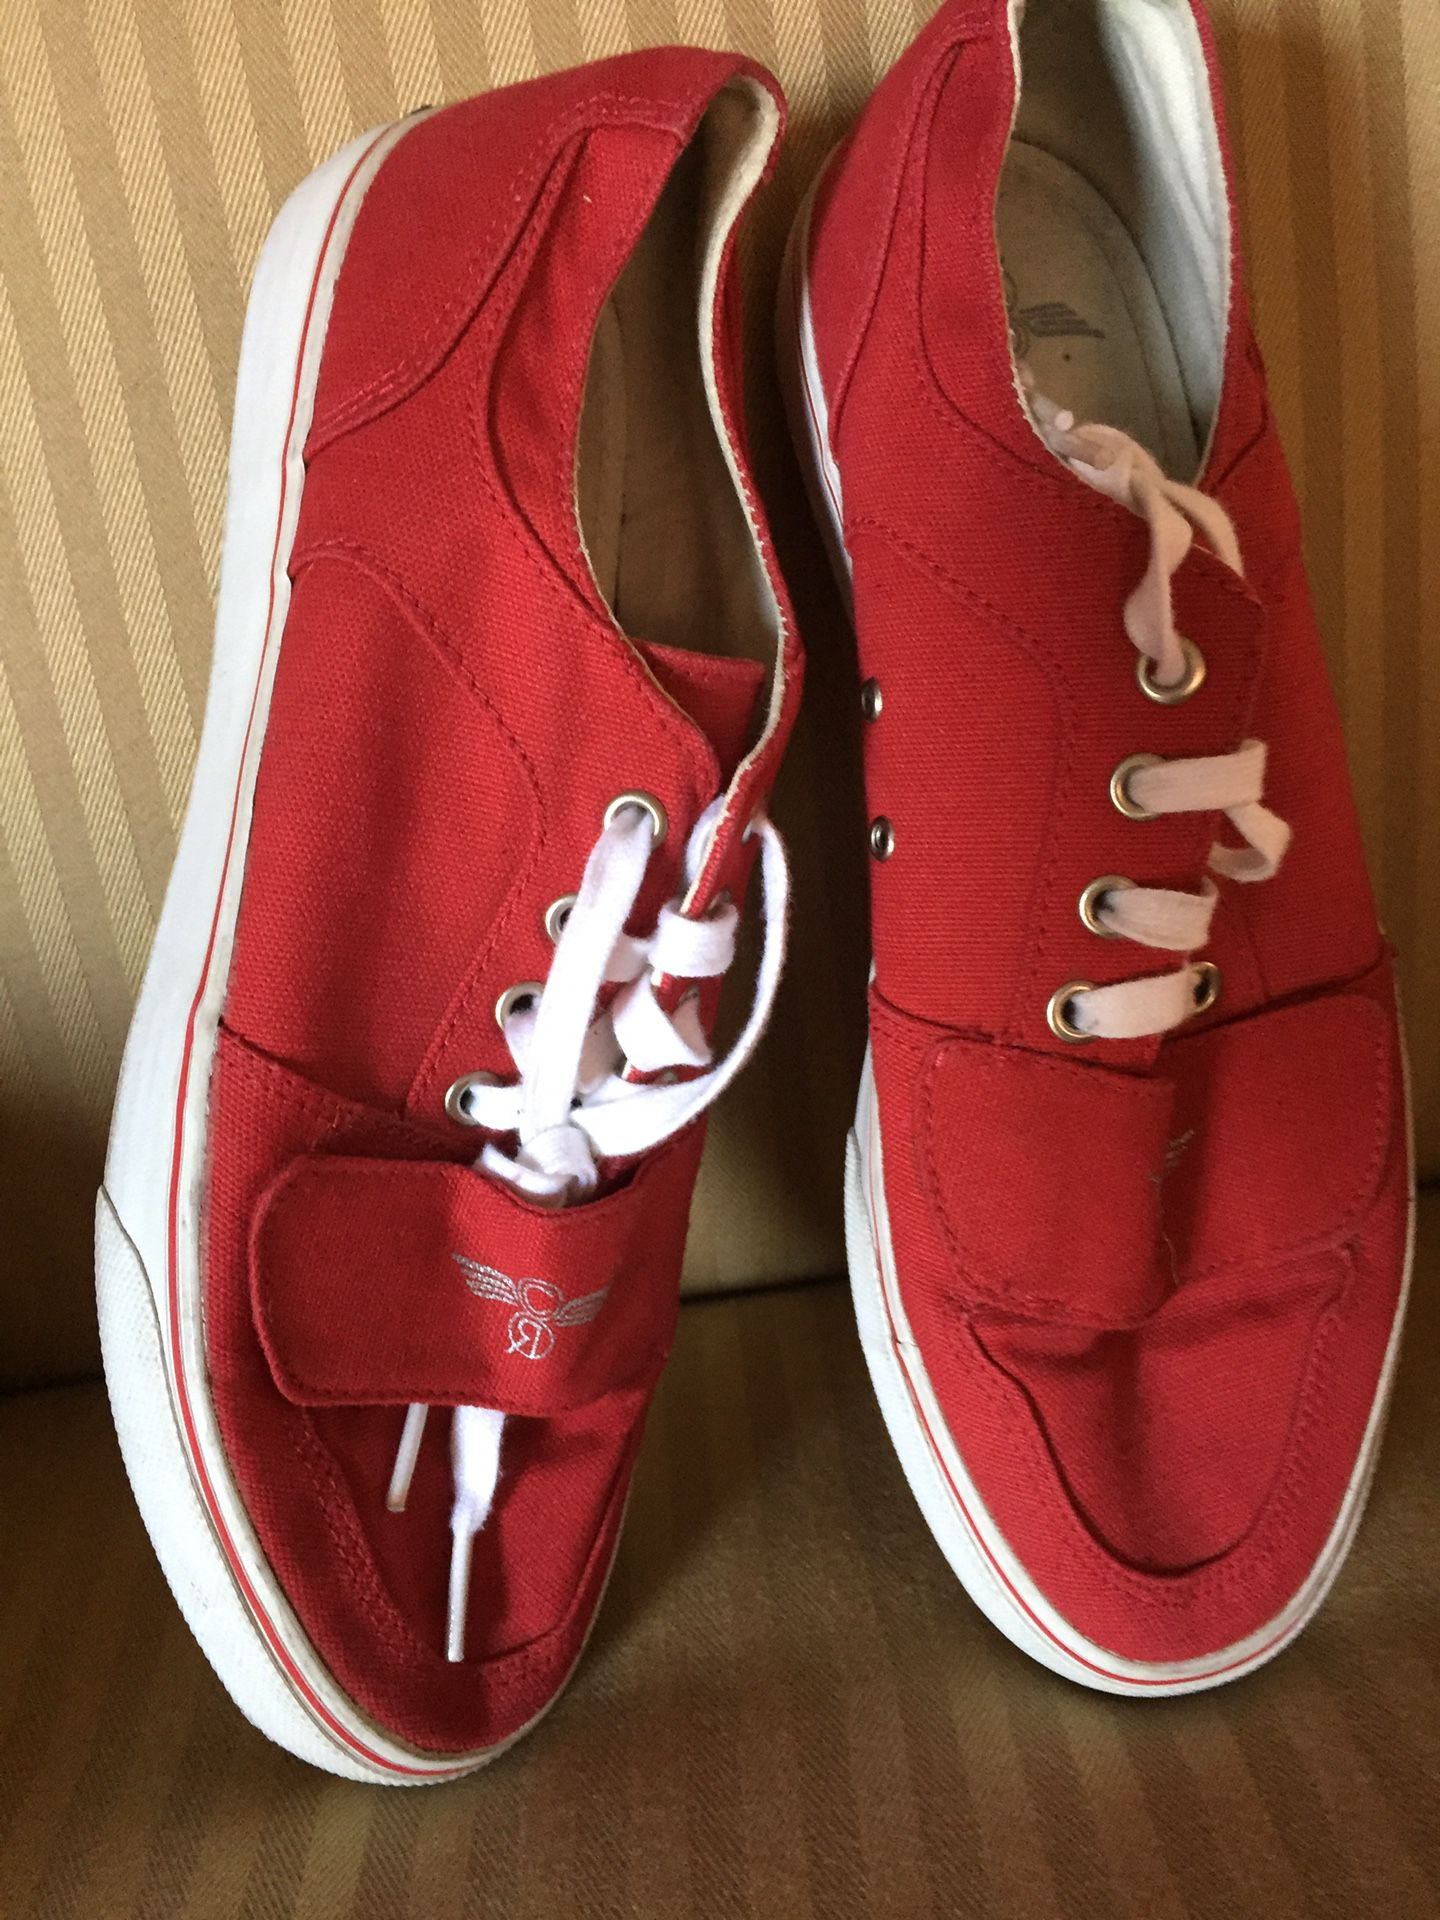 Size 9